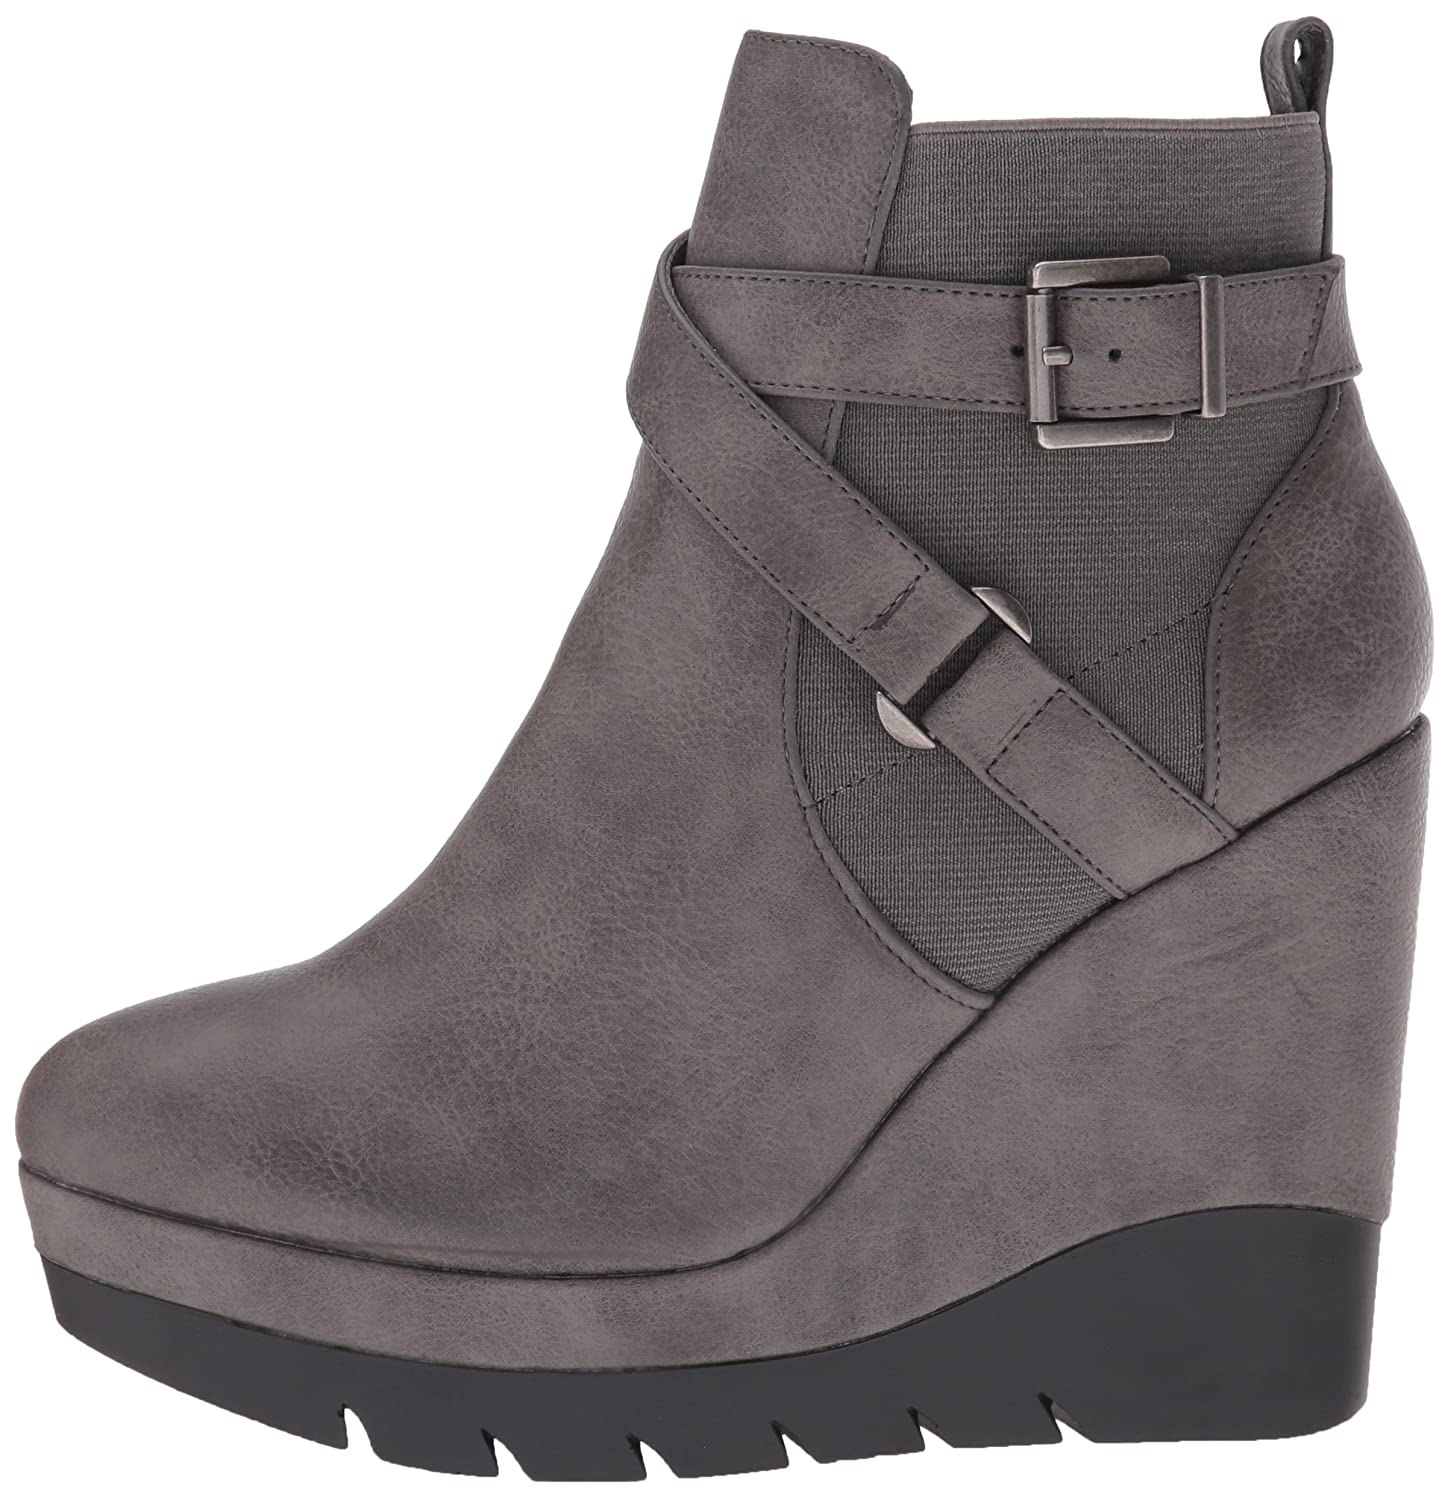 Sbicca Women's Freespirit Boot B(M) B01ESOXDWK 10 B(M) Boot US|Grey 18489b